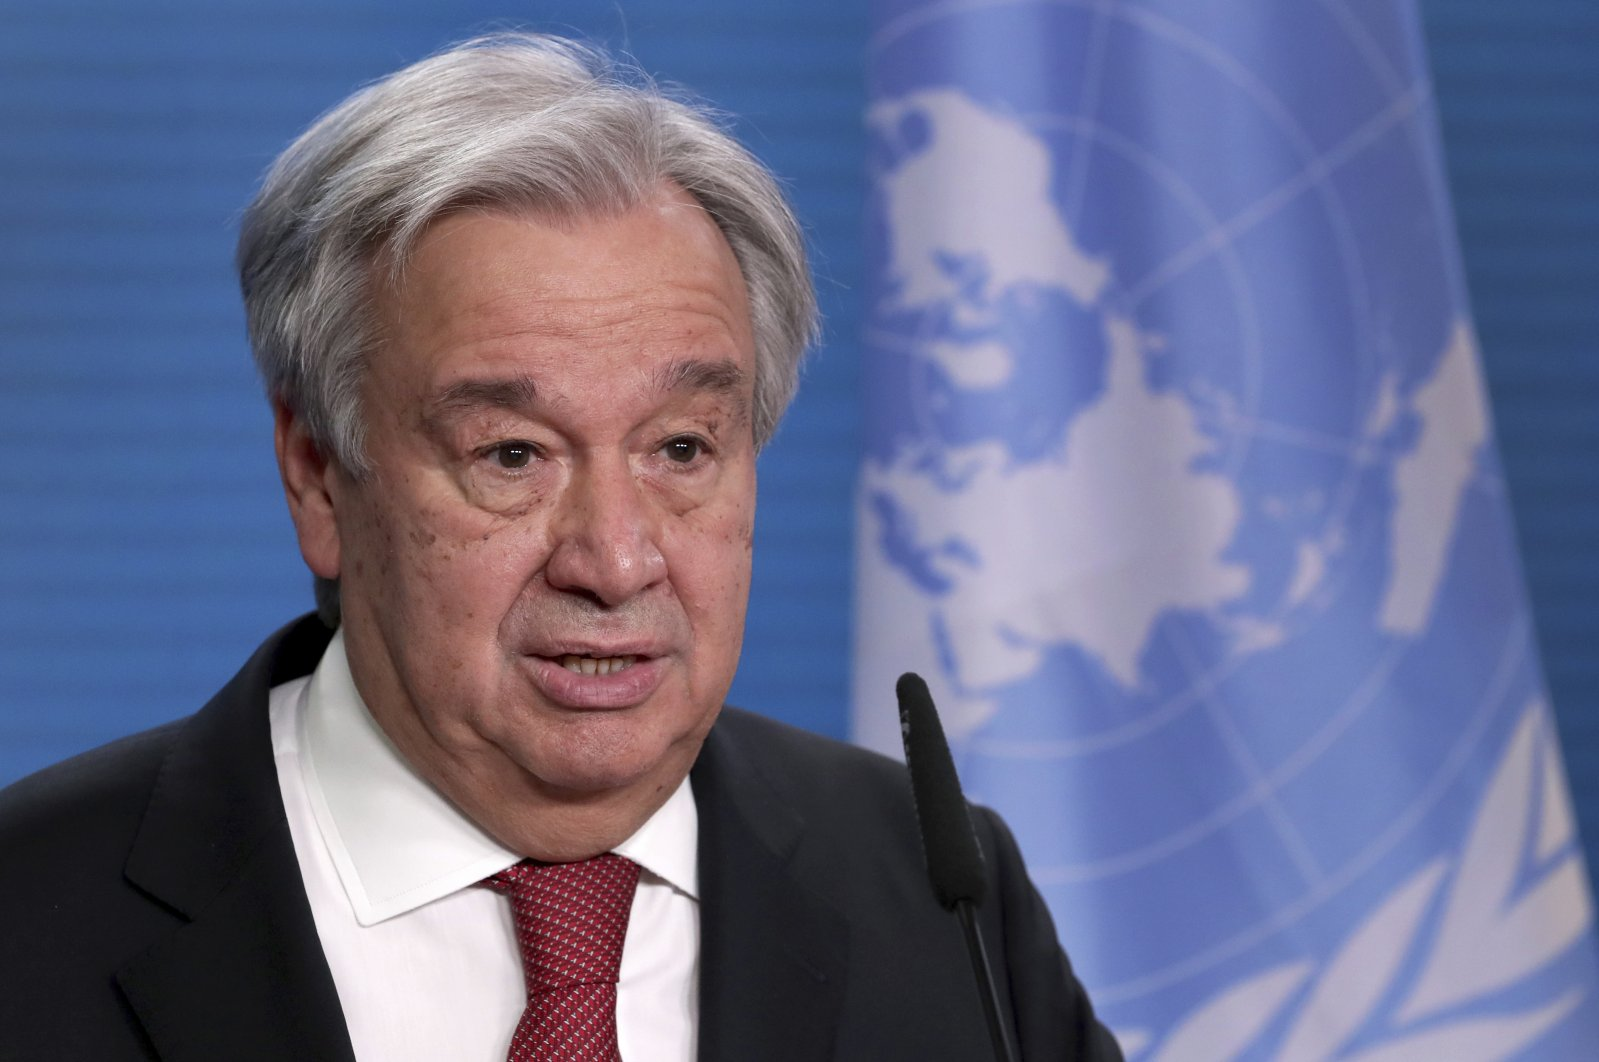 U.N. Secretary-General Antonio Guterres addresses the media during a joint press conference in Berlin, Germany, Dec. 17, 2020. (AP Photo)